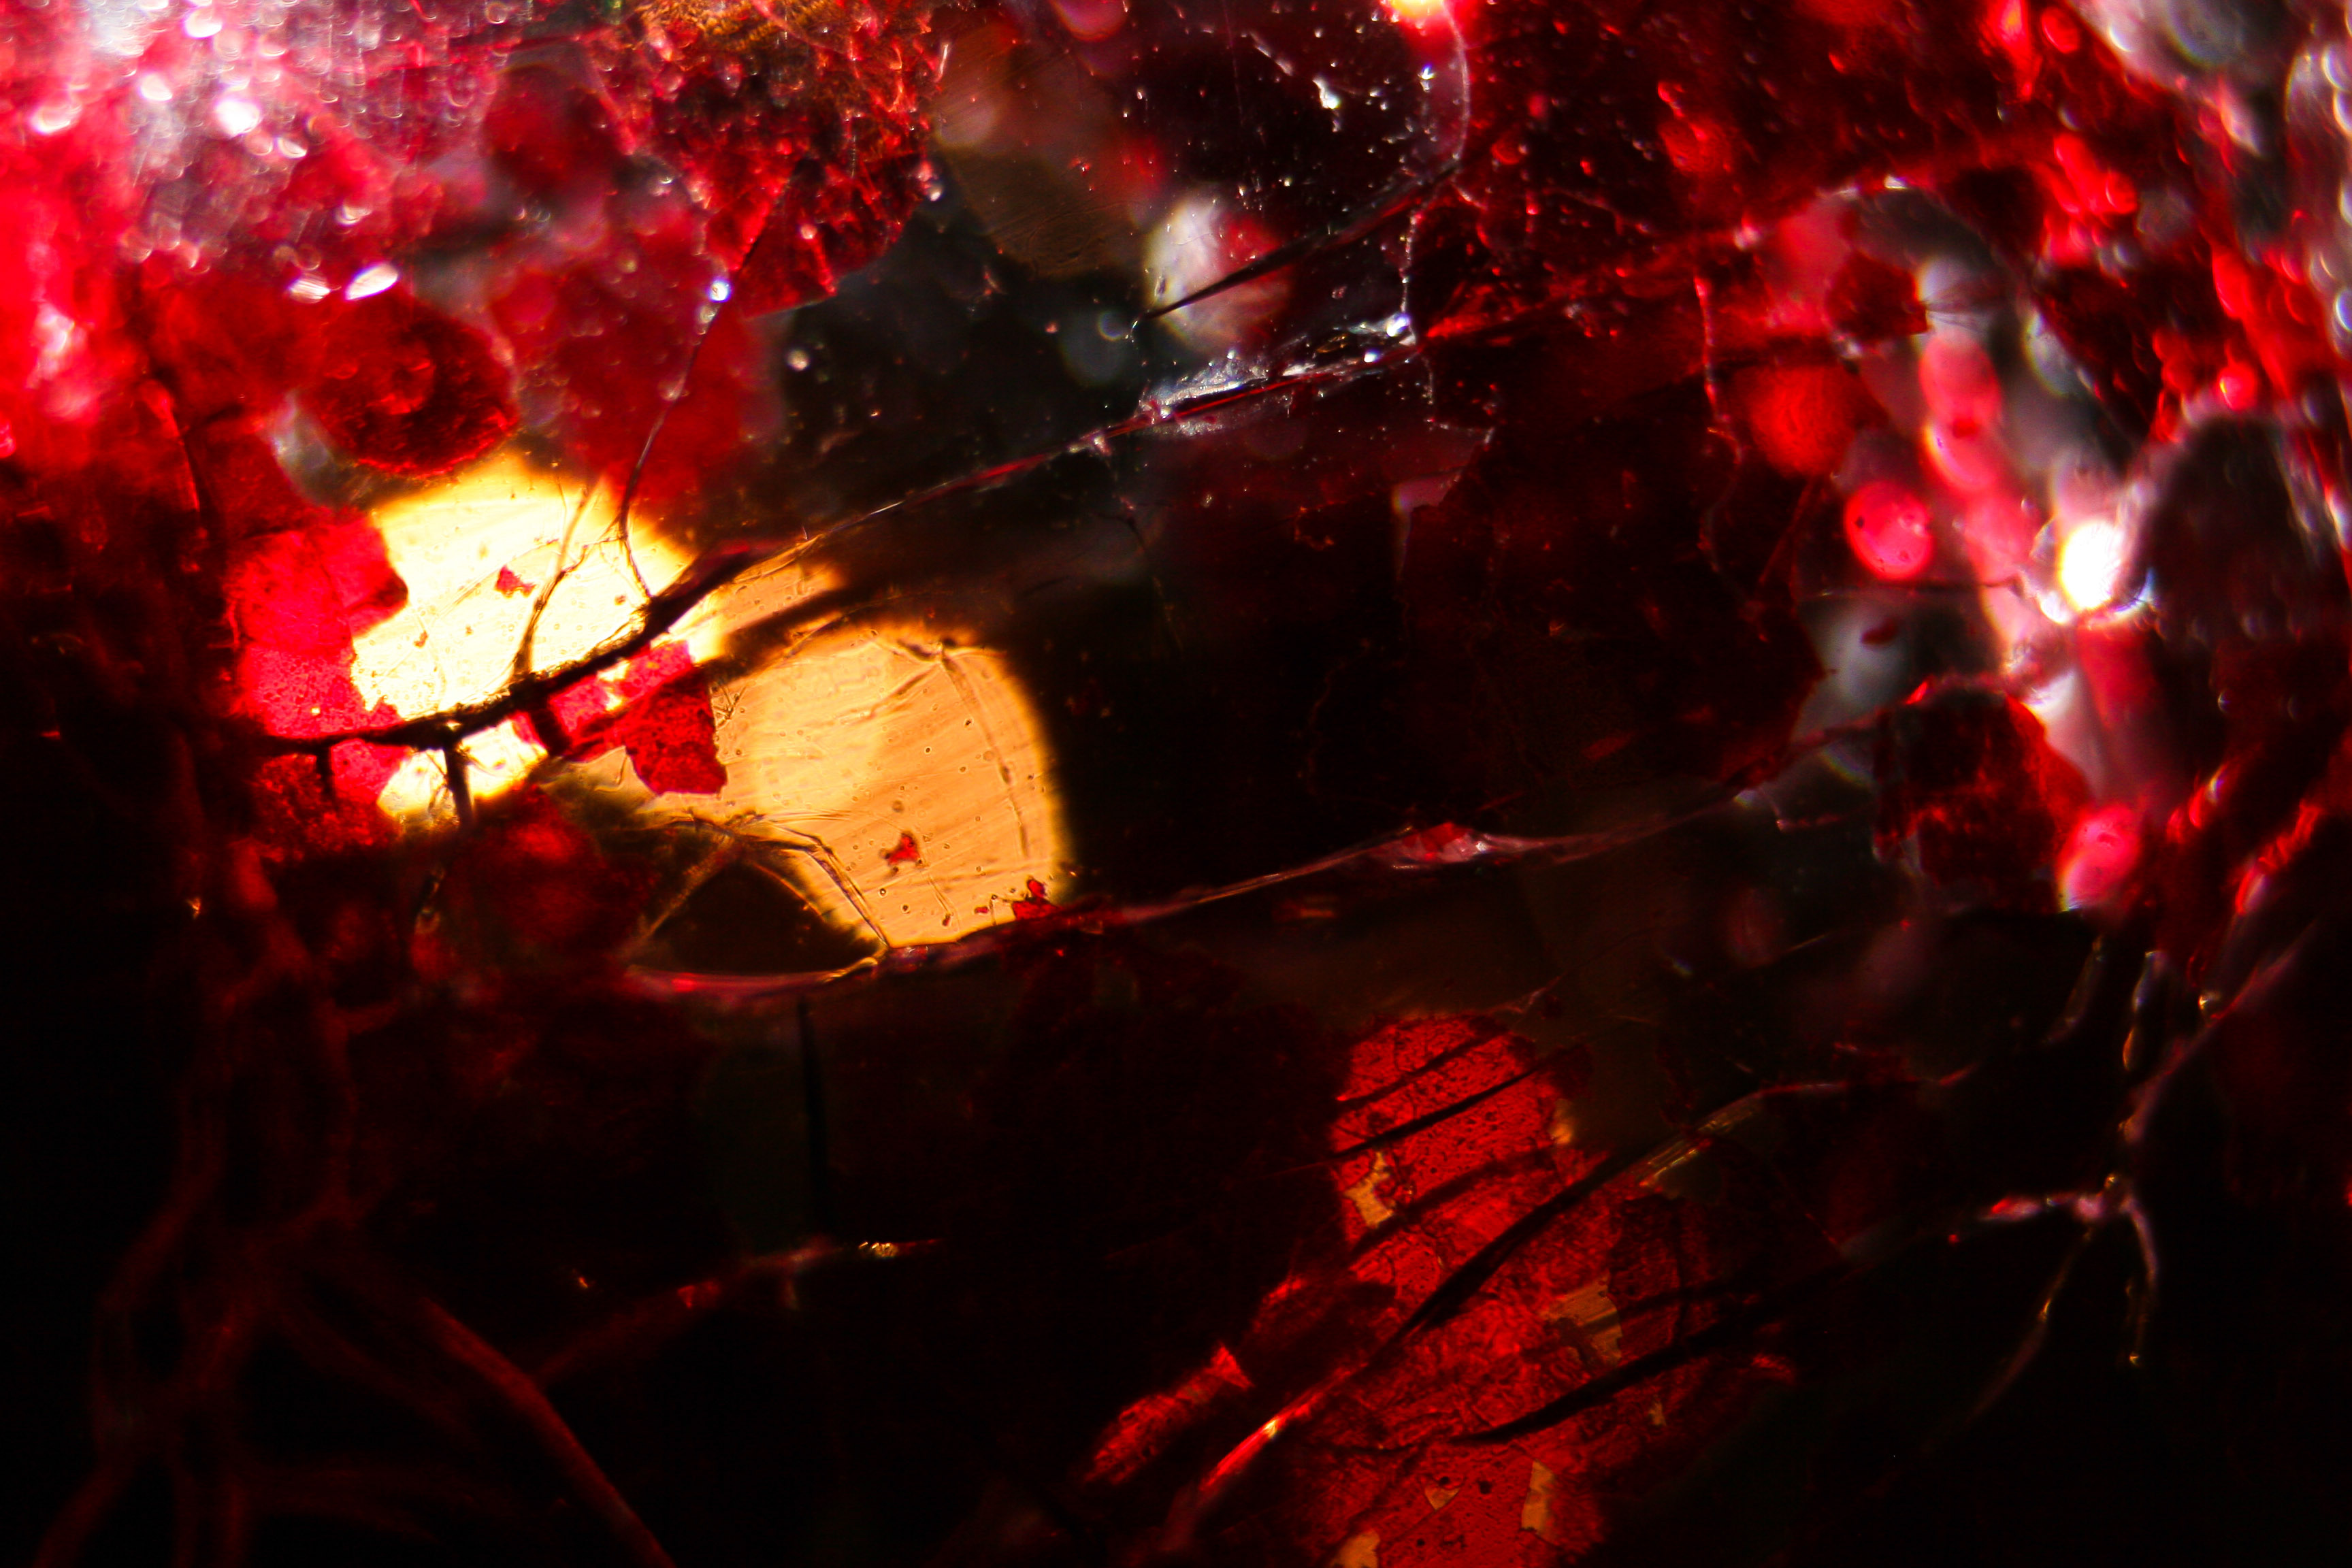 Red cracked glass texture wallpaper background dark broken shattered red cracked glass texture wallpaper background dark broken shattered texturex free and premium textures and high resolution graphics voltagebd Choice Image